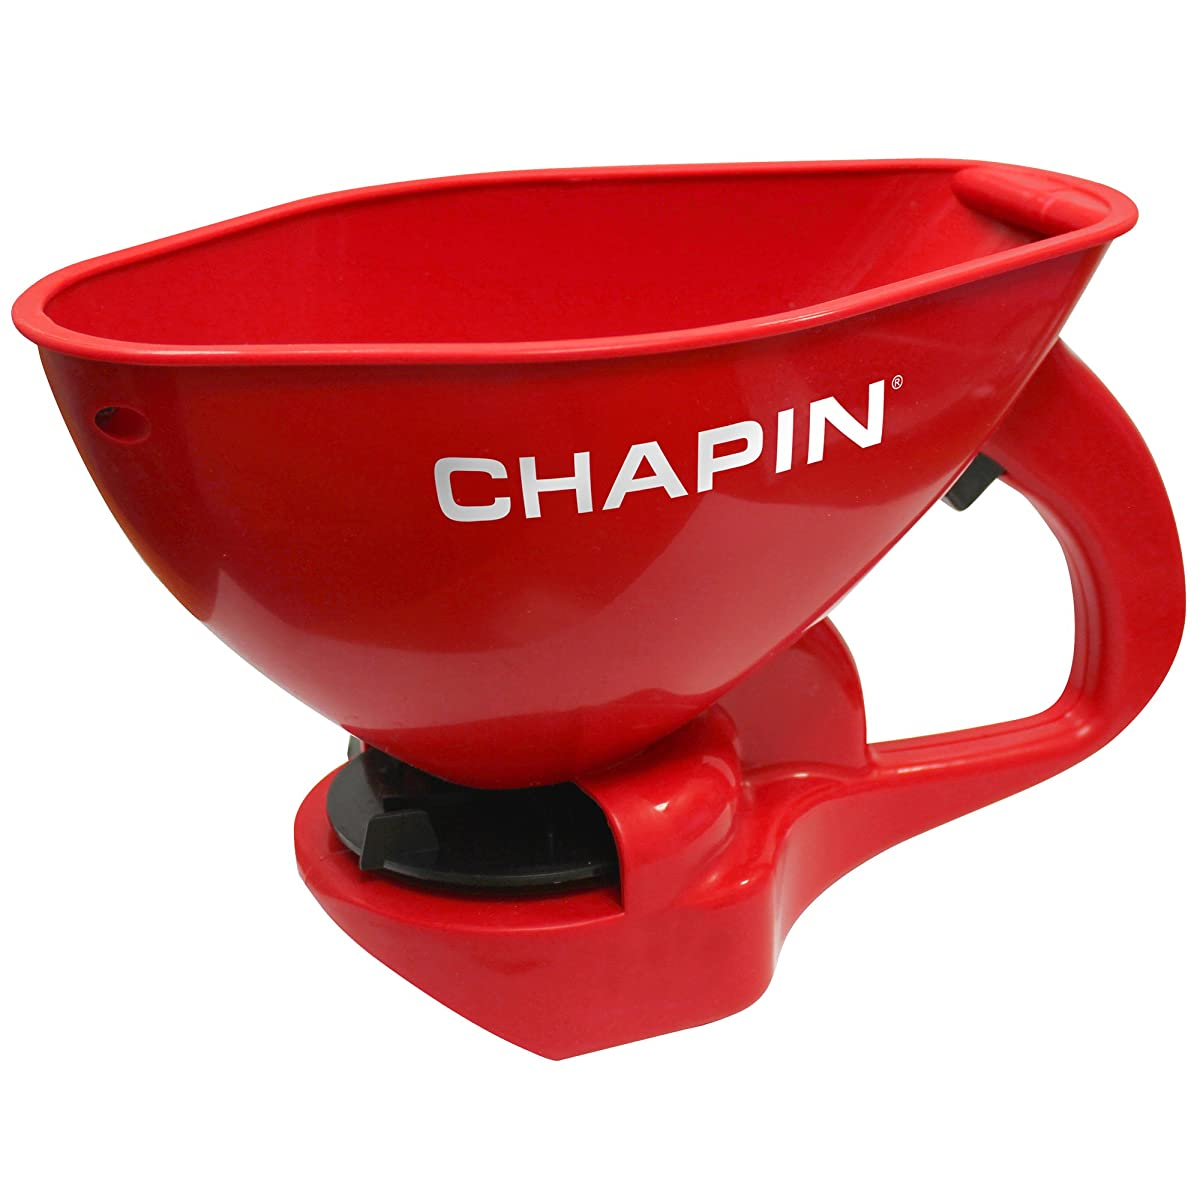 Chapin 84150A 1.5-Liter All Season Poly Hand Crank Spreader For Seeds, Fertilizer, Salt and Ice Melt